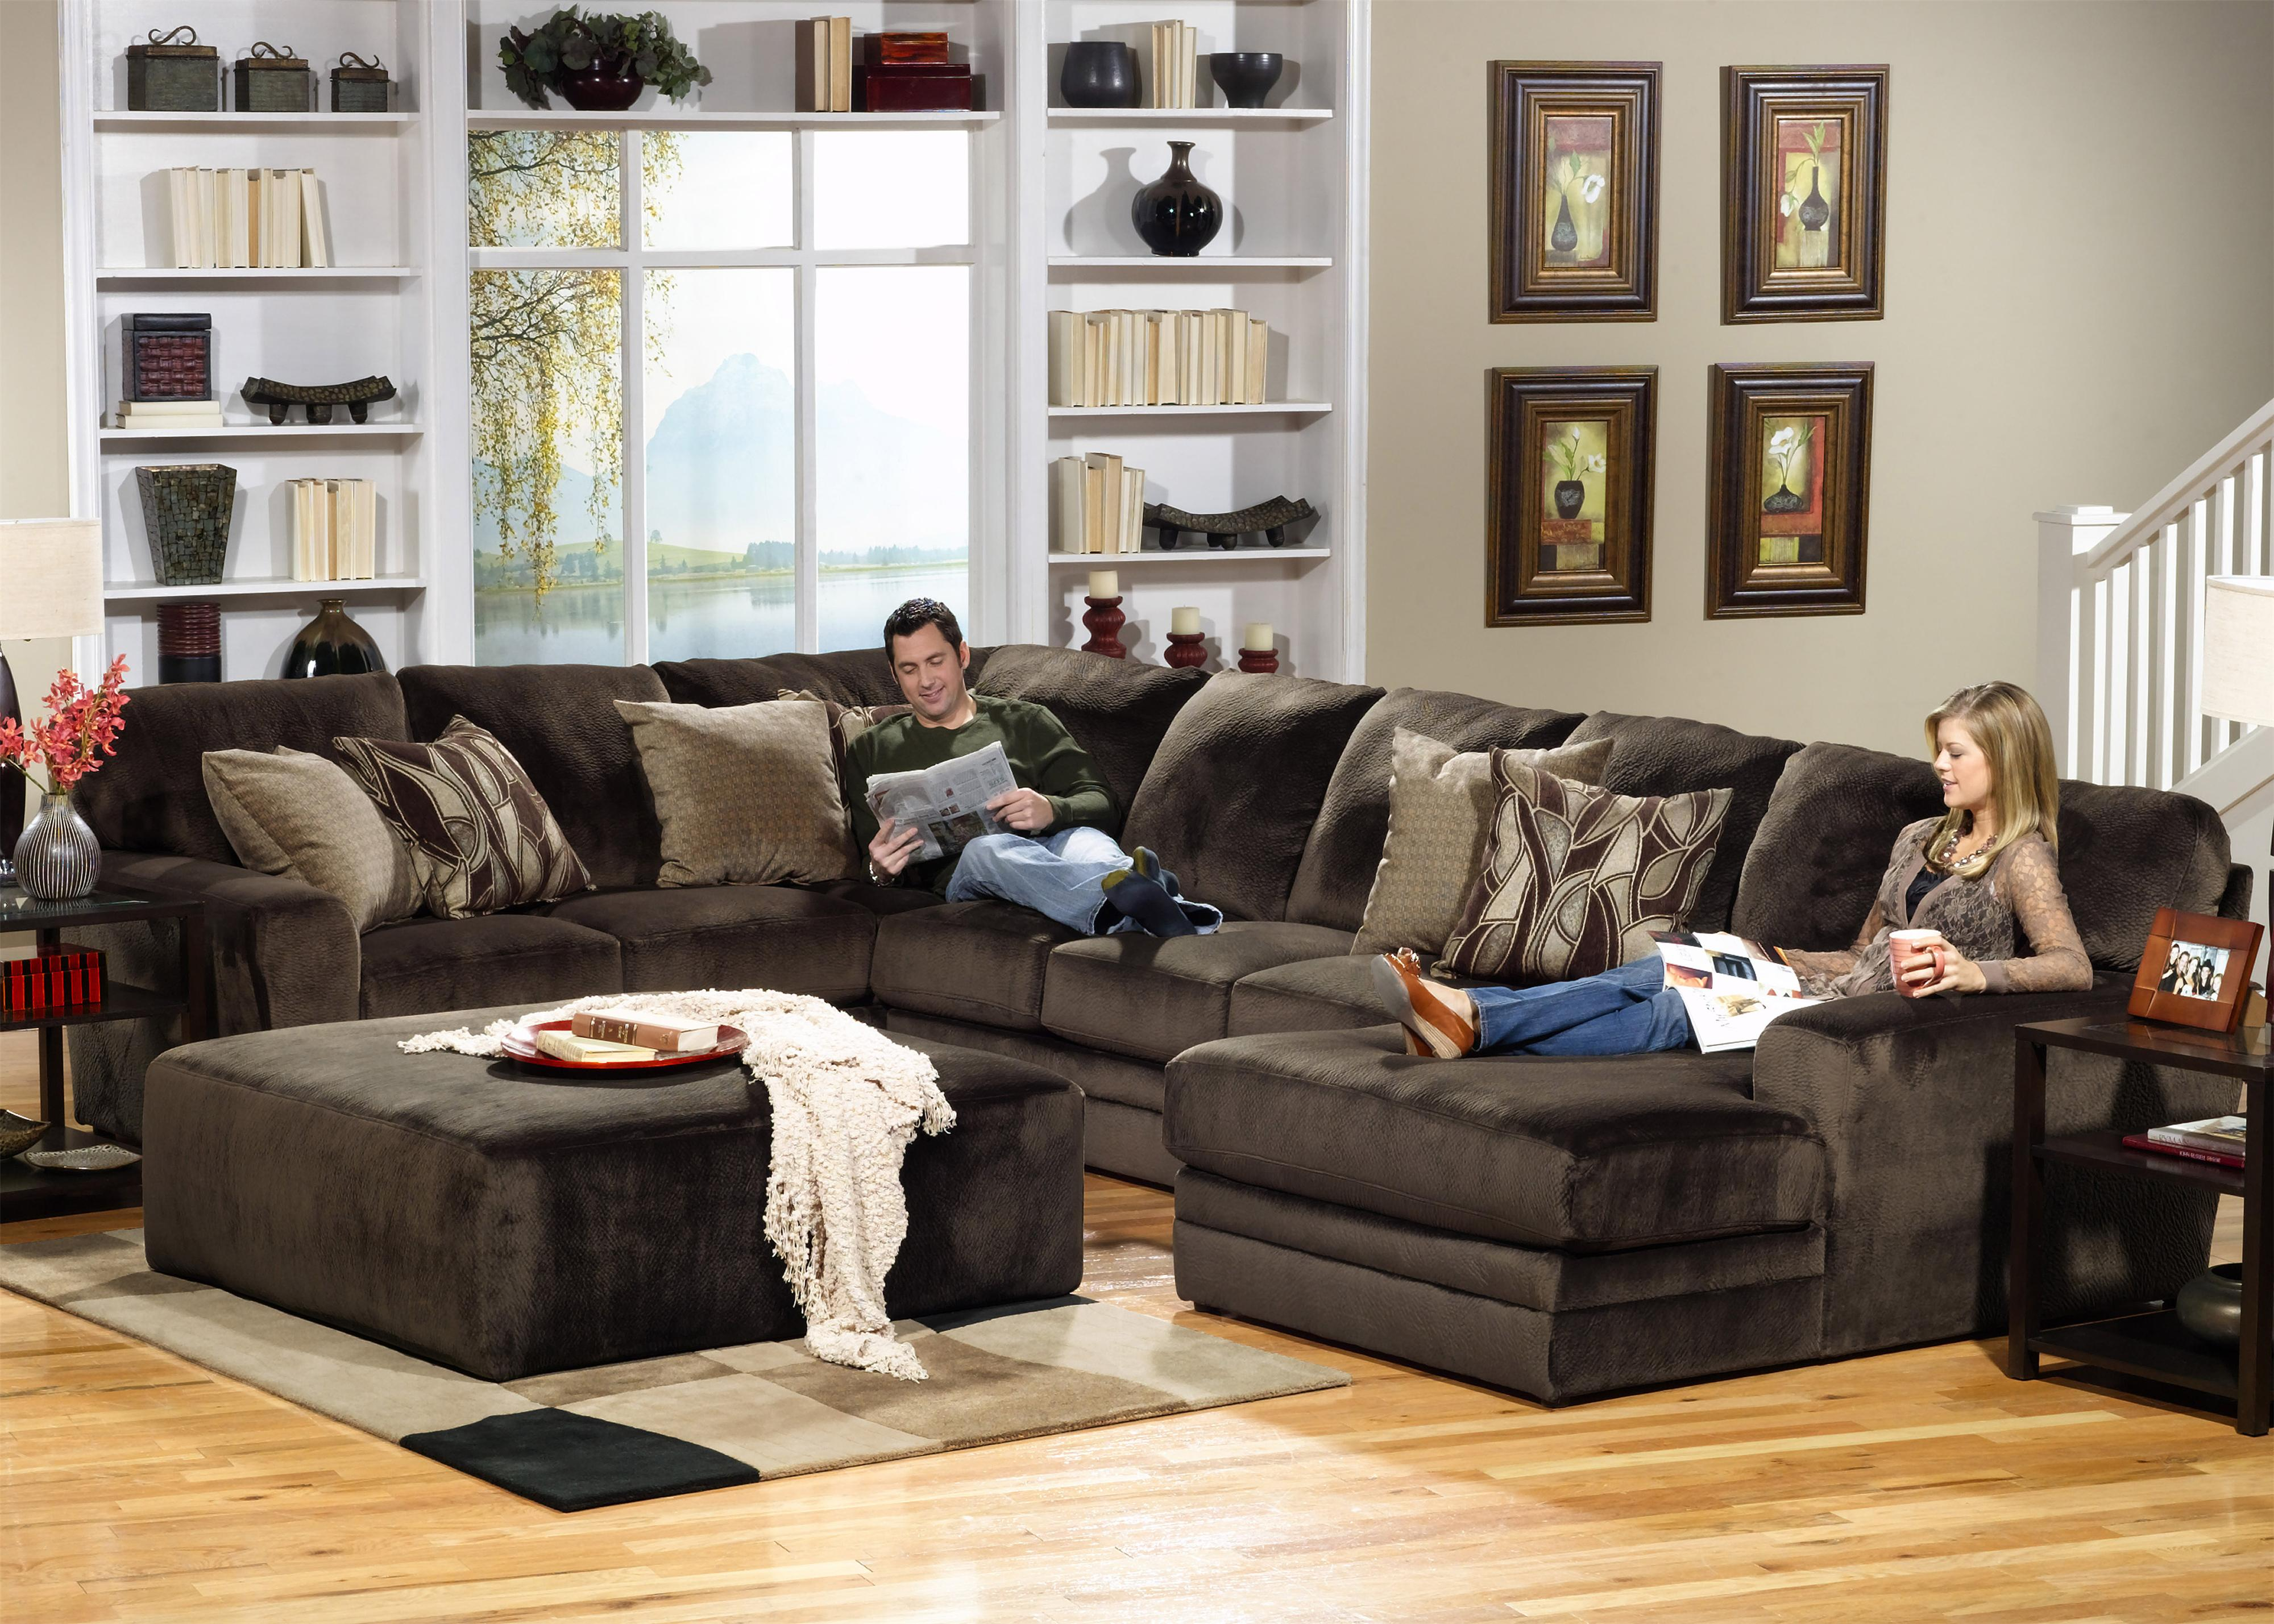 Jackson Furniture 4377 Everest 2 Piece Sectional Sofa With Lsf